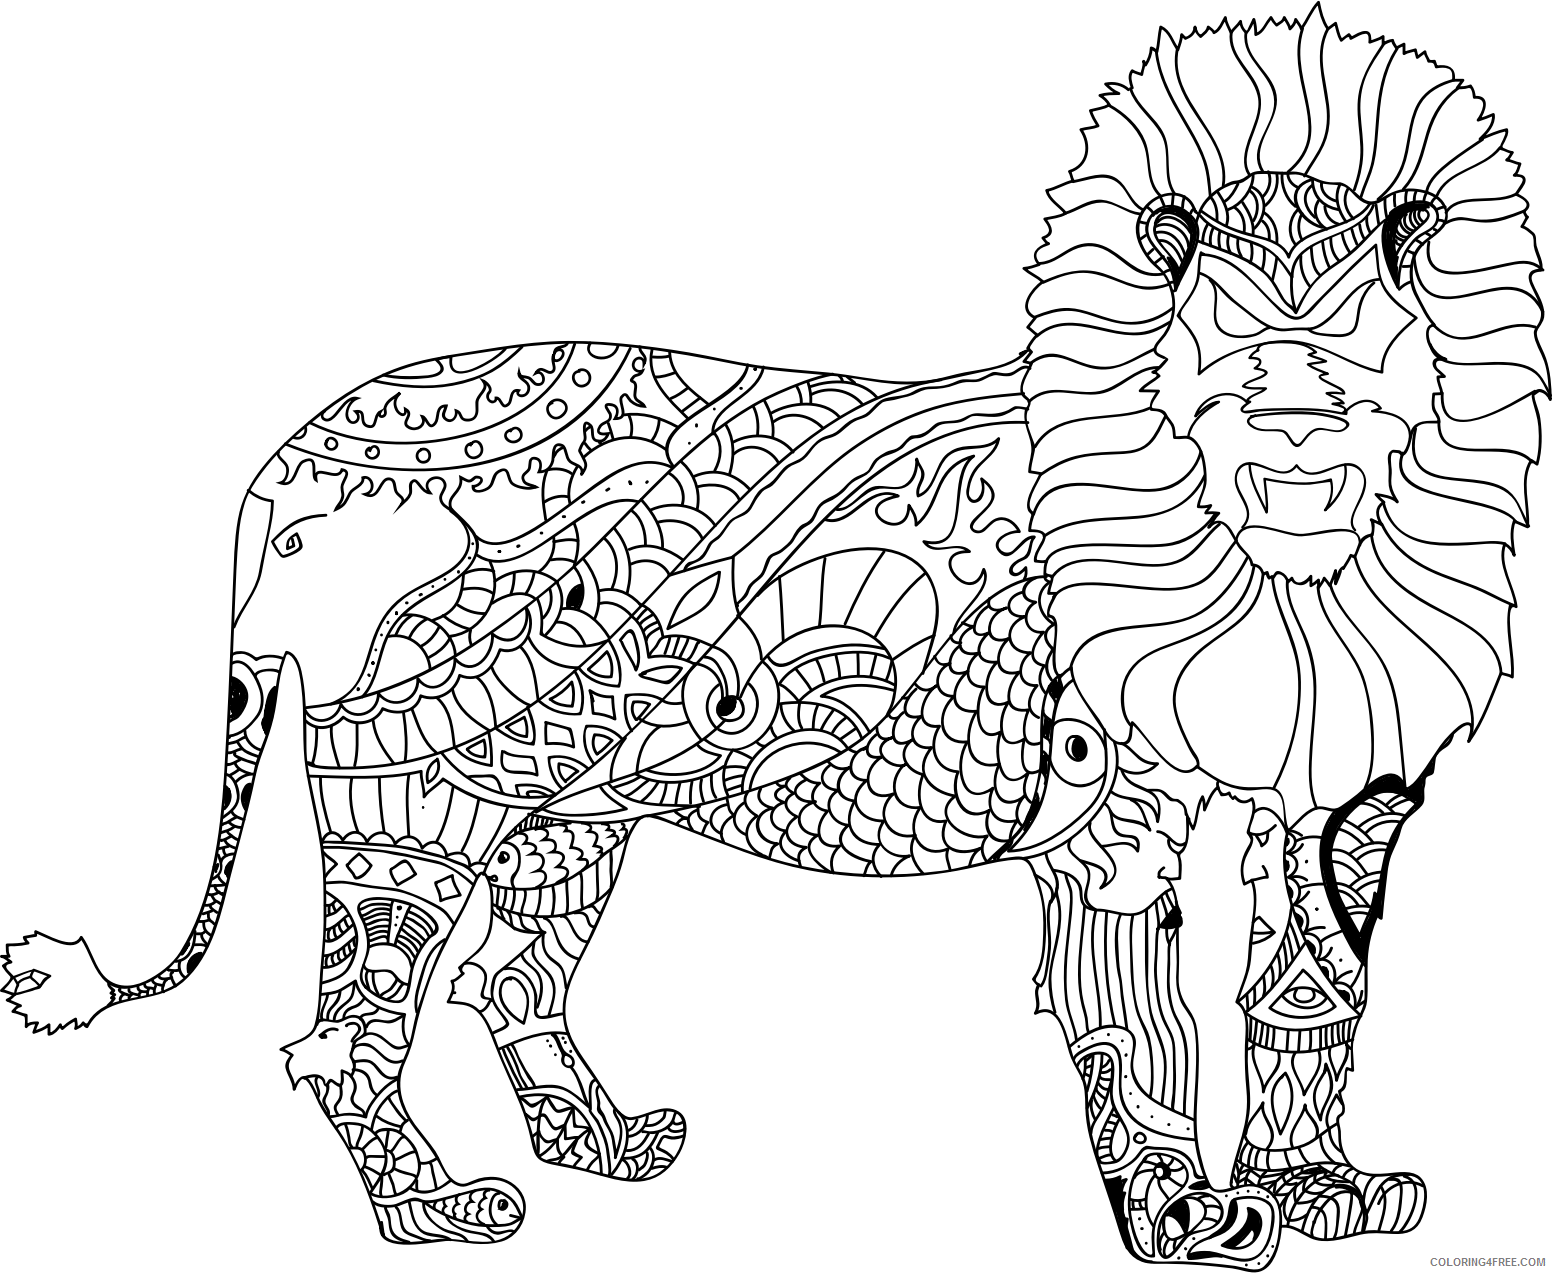 Black and White Lion Coloring Pages fop lion 2 Printable Coloring4free